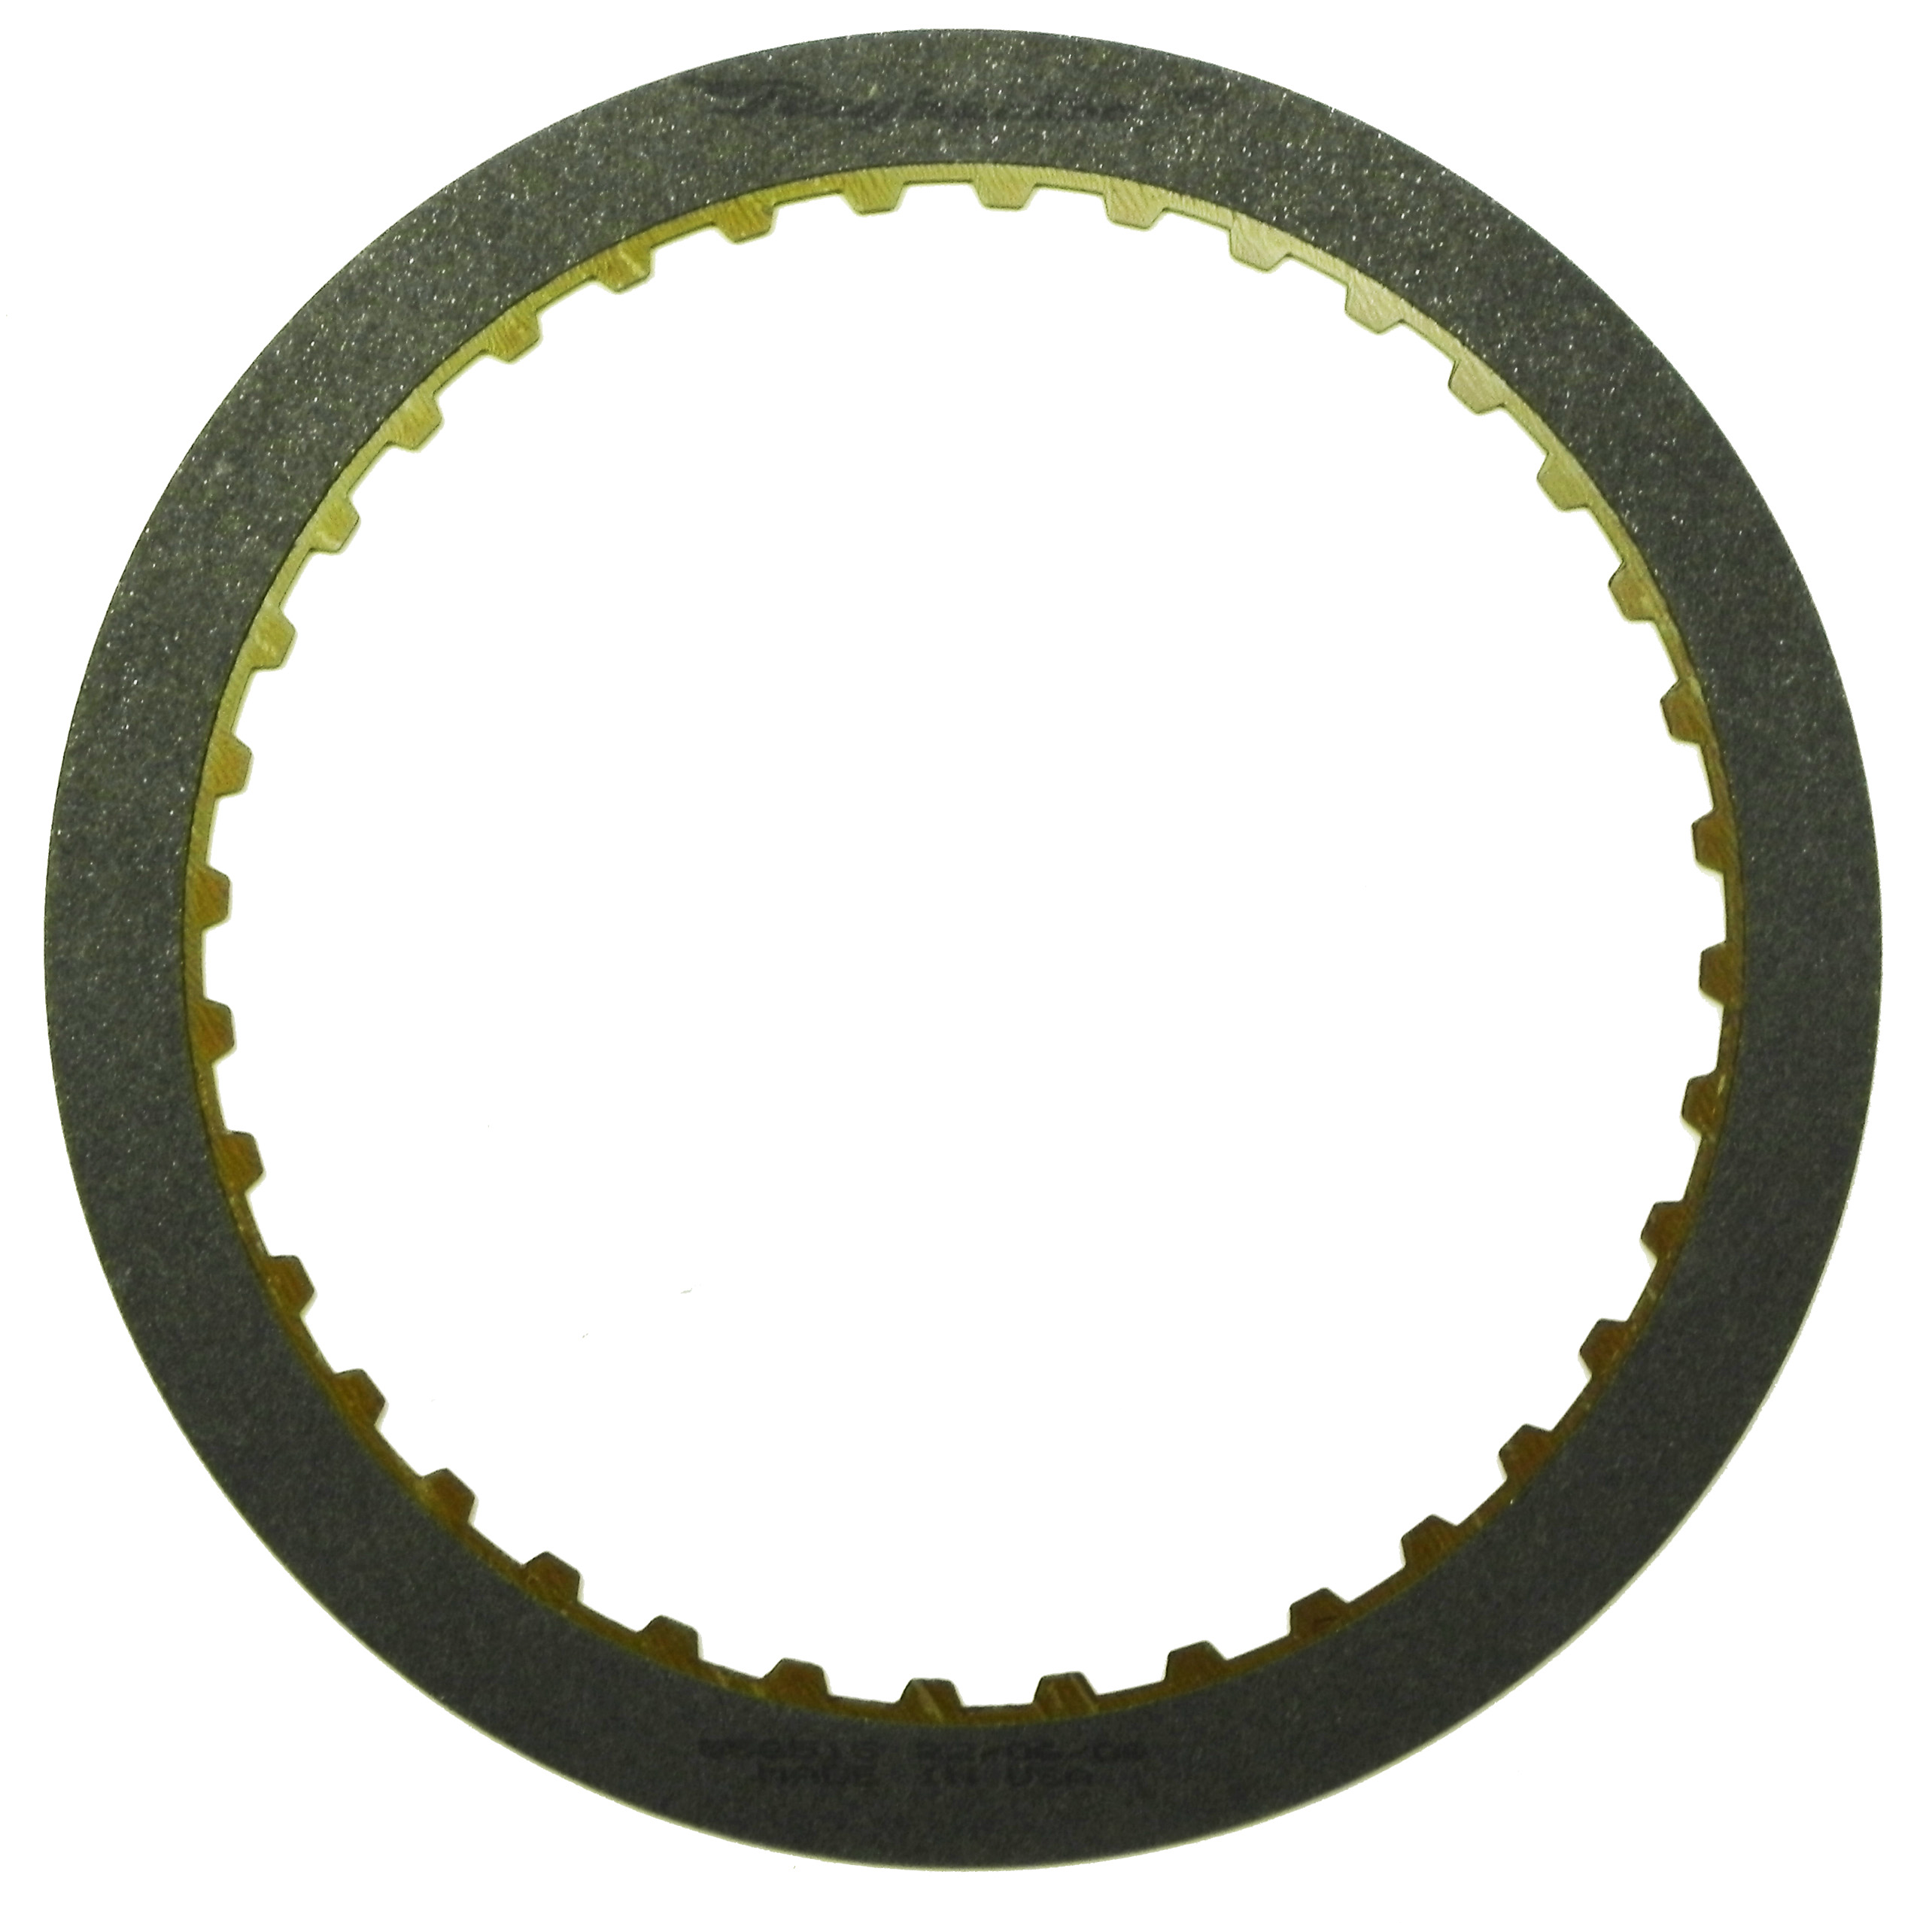 R558515 | 2007-ON Friction Clutch Plate High Energy 1, 2, 3, 4 (Forward) High Energy